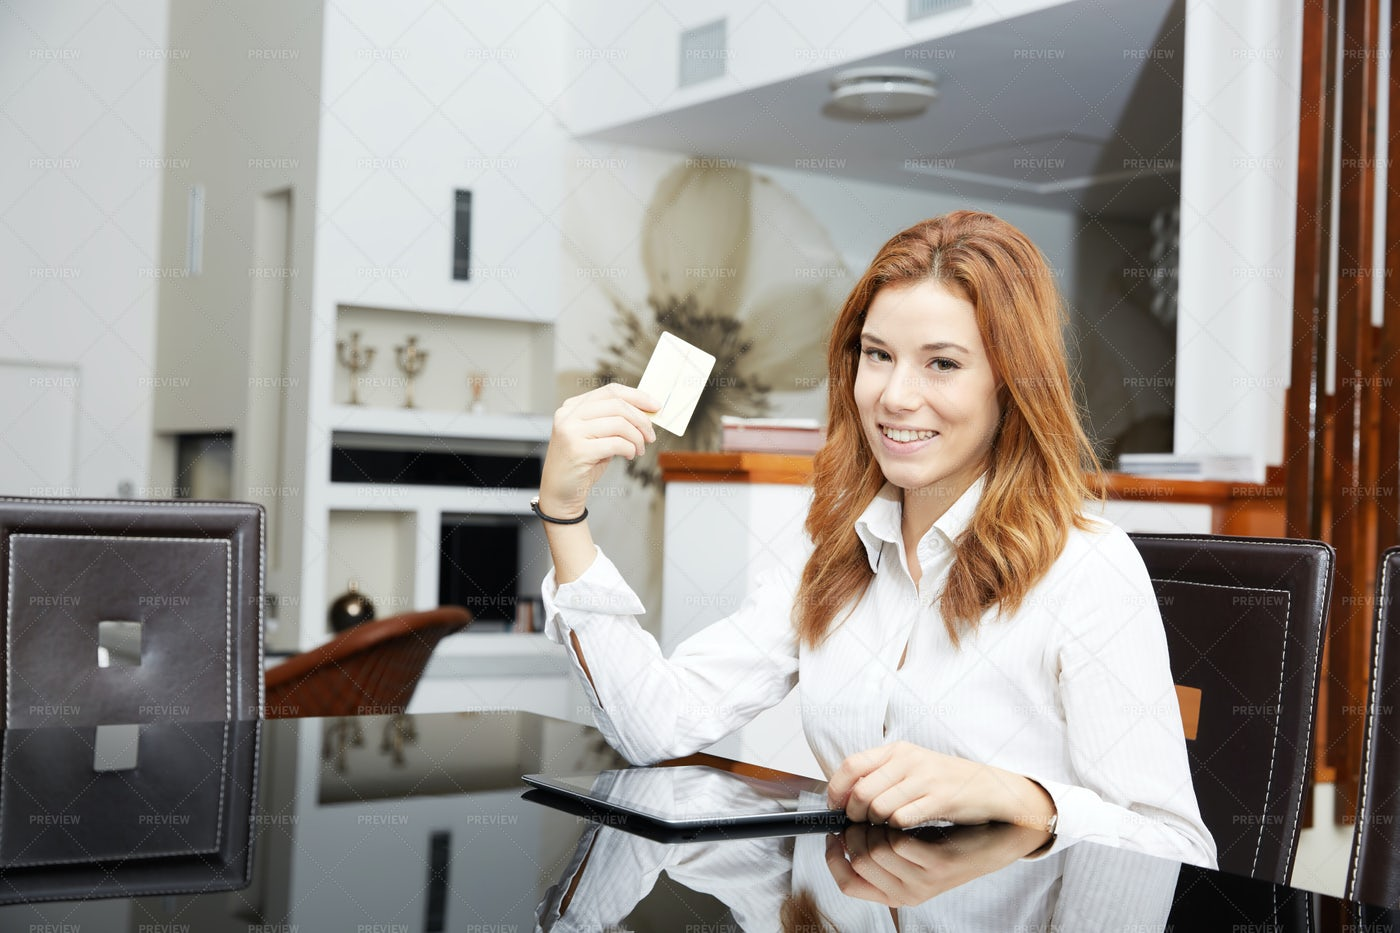 Shopping With Digital Tablet: Stock Photos